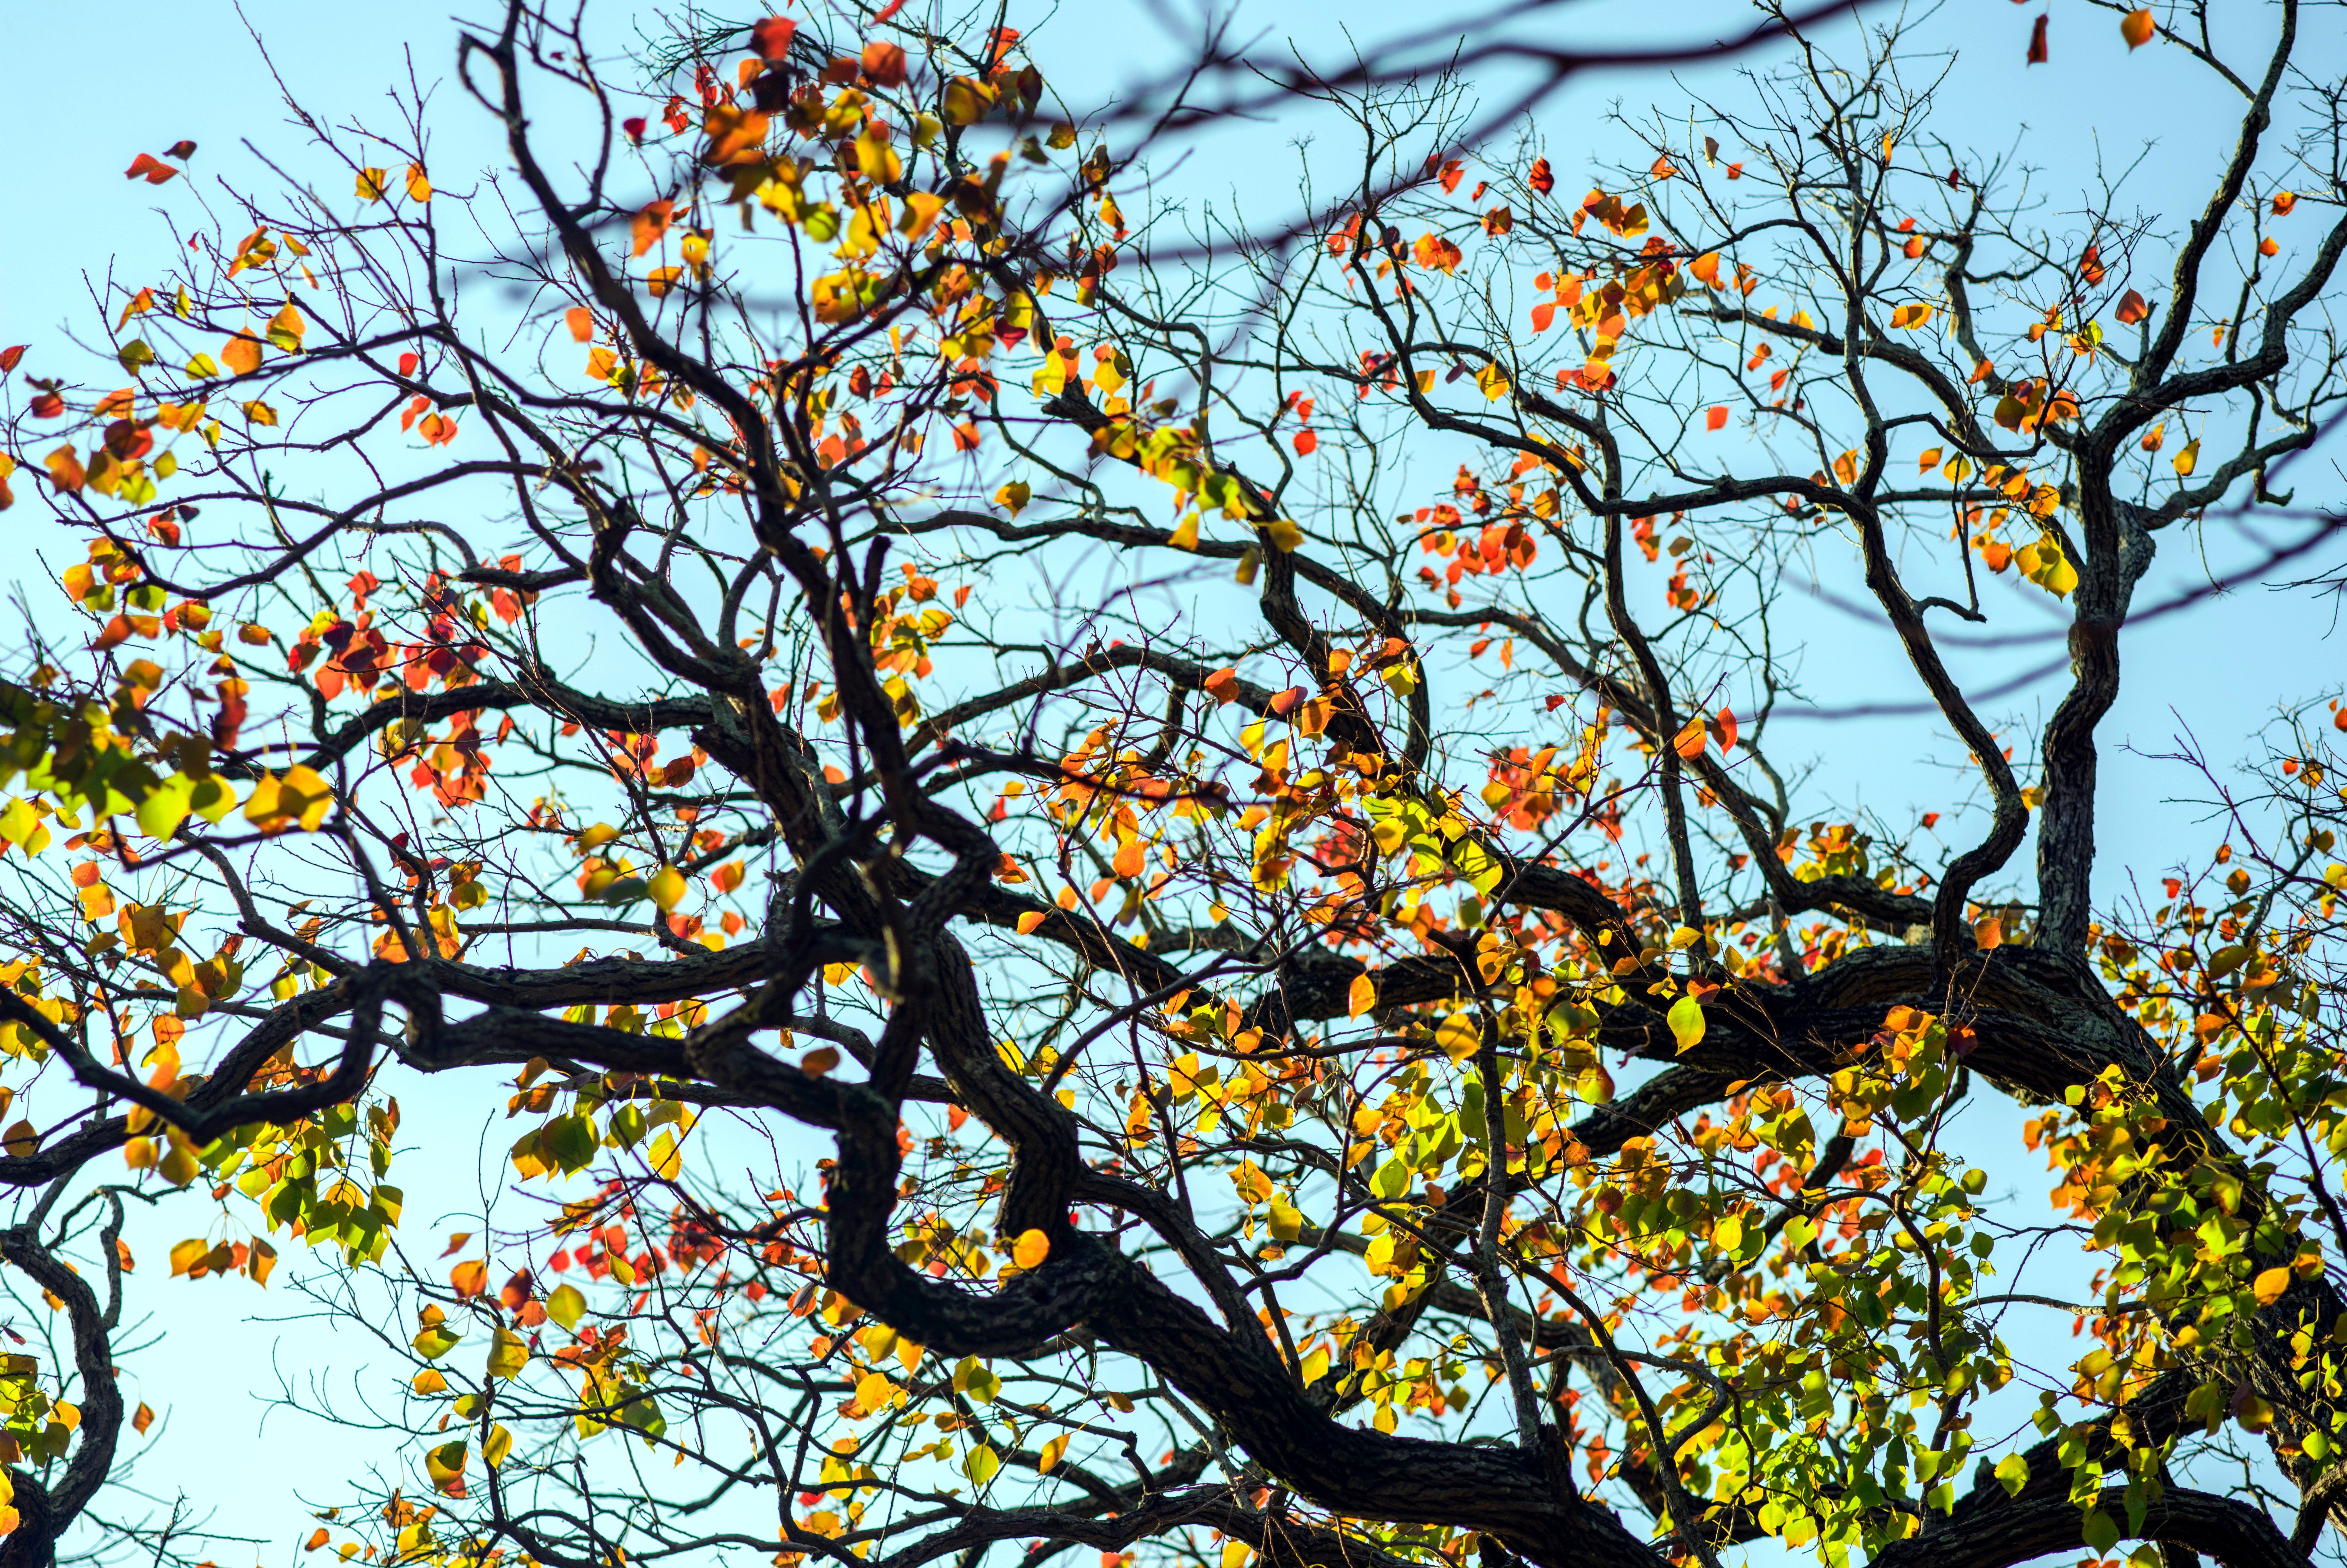 The autumn branches of a Chinese tallow tree with changing red, green, and yellow leaves